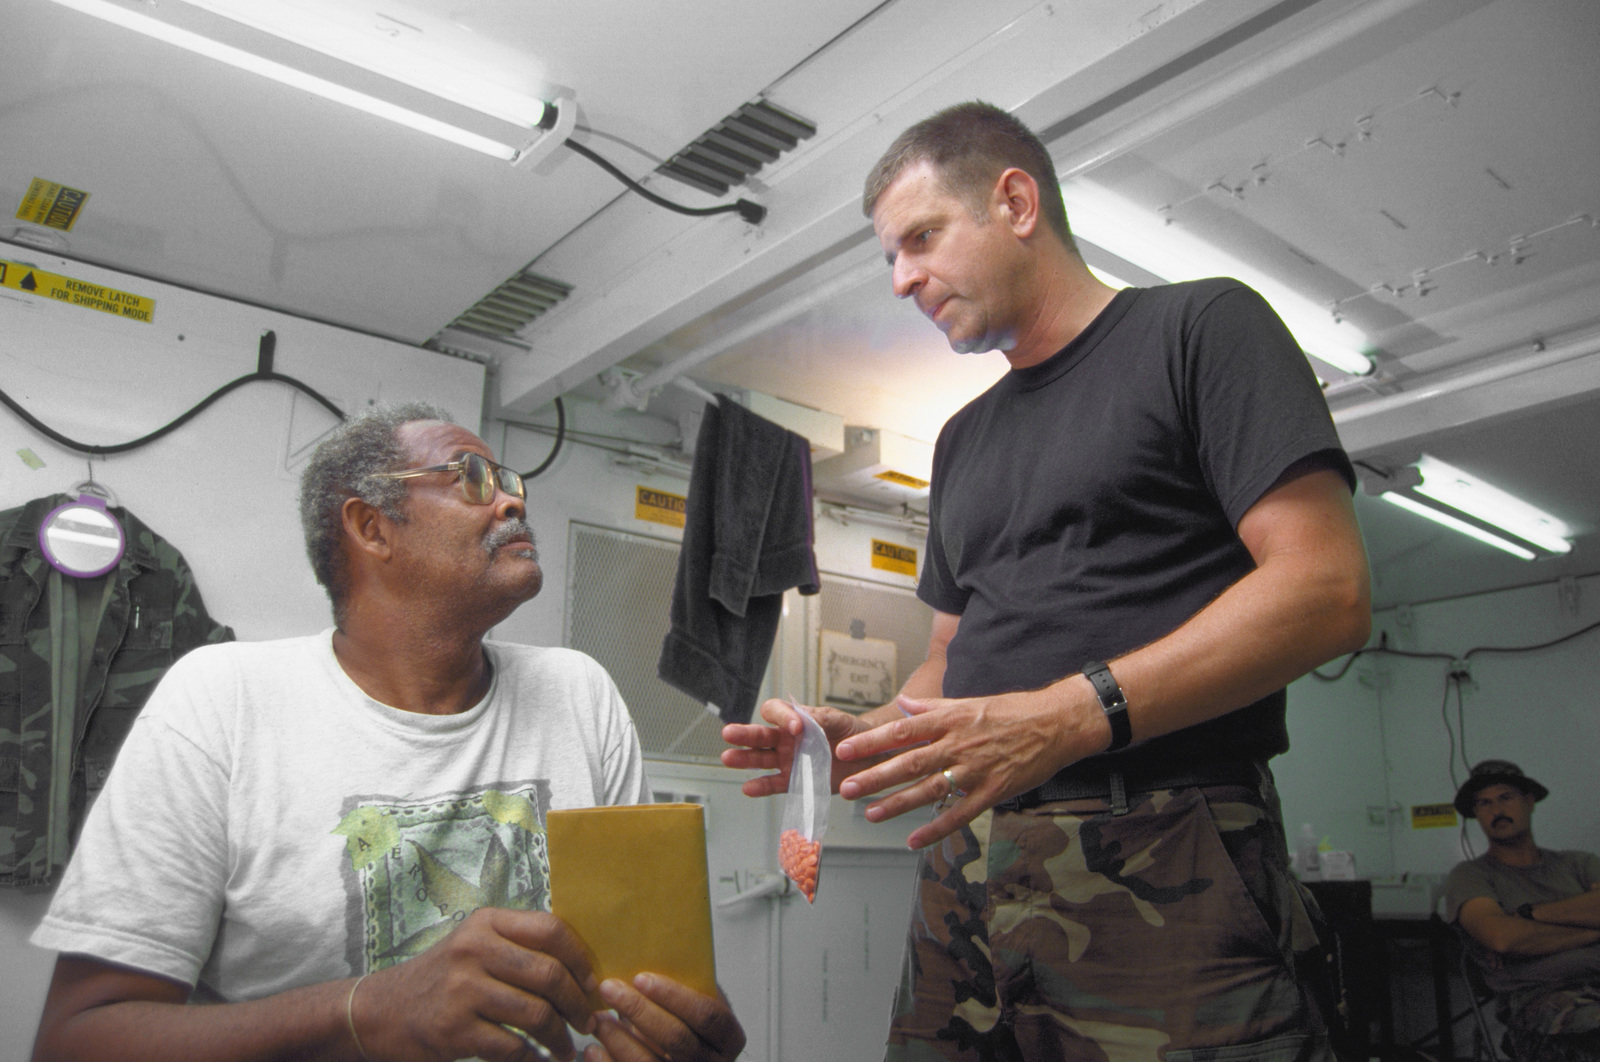 LT. COL. Stephen R. Holt, deployed commander of the 49th Medical Squadron, 2nd Echelon Medical facility, Holloman Air Force Base, N.M. speaks to a Guyanese patient. The 49th doctors provided medical care in this first combined humanitarian and civic assistance exercise conducted between the United States and Guyana. Military personnel from Air Force, Air Force Reserve & National Guard, Army, Army National Guard and Marine Corps participated in the exercise which included engineering and medical readiness training